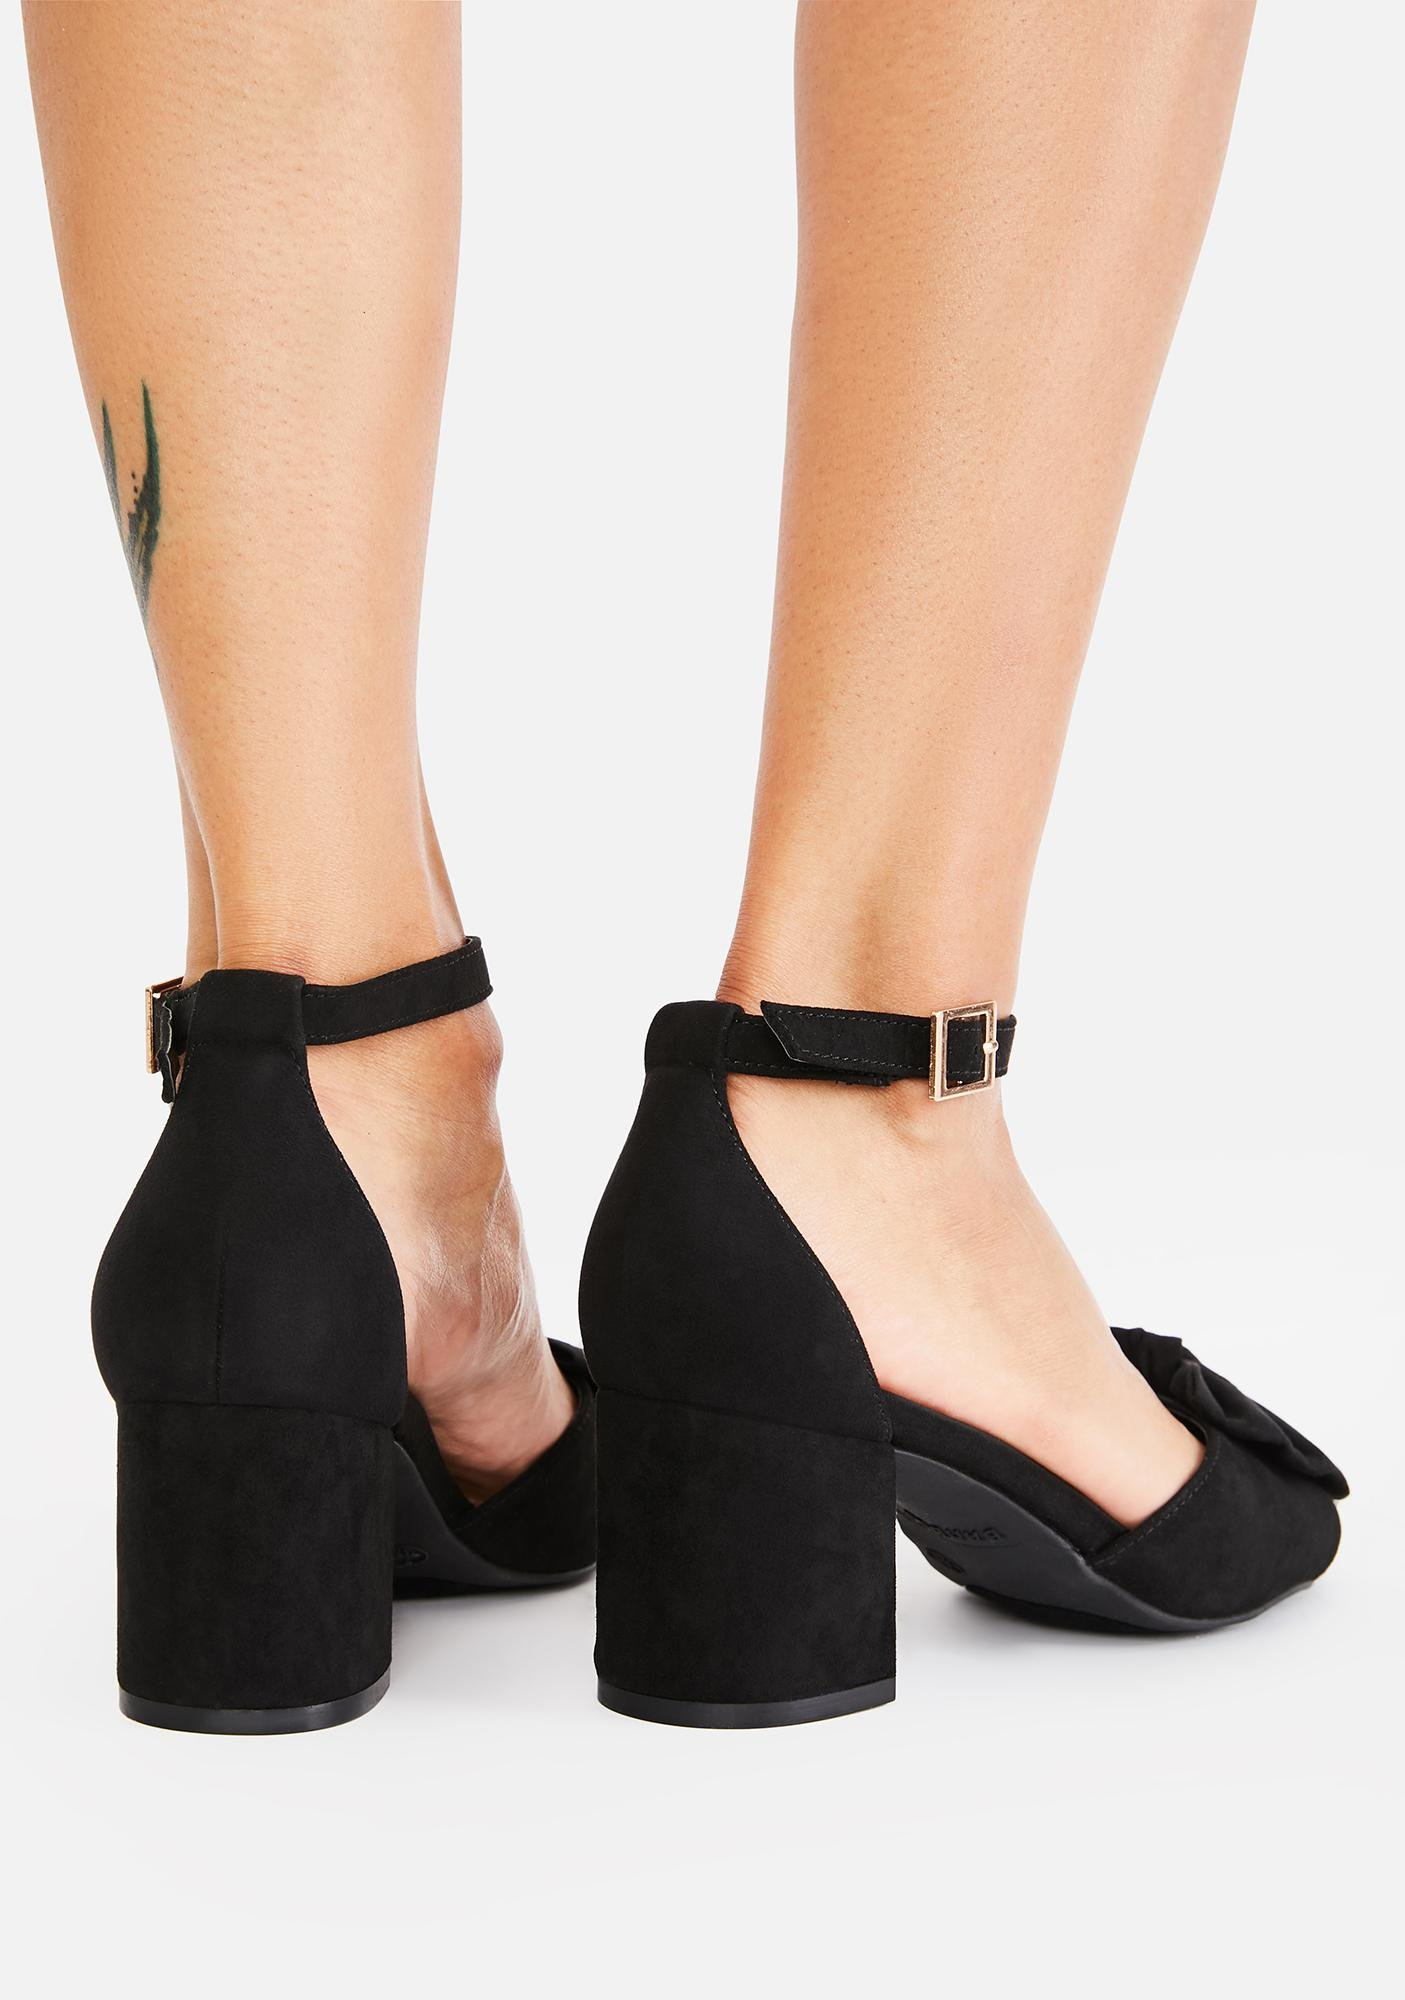 Secrets All Wrapped Up Peep Toe Heels